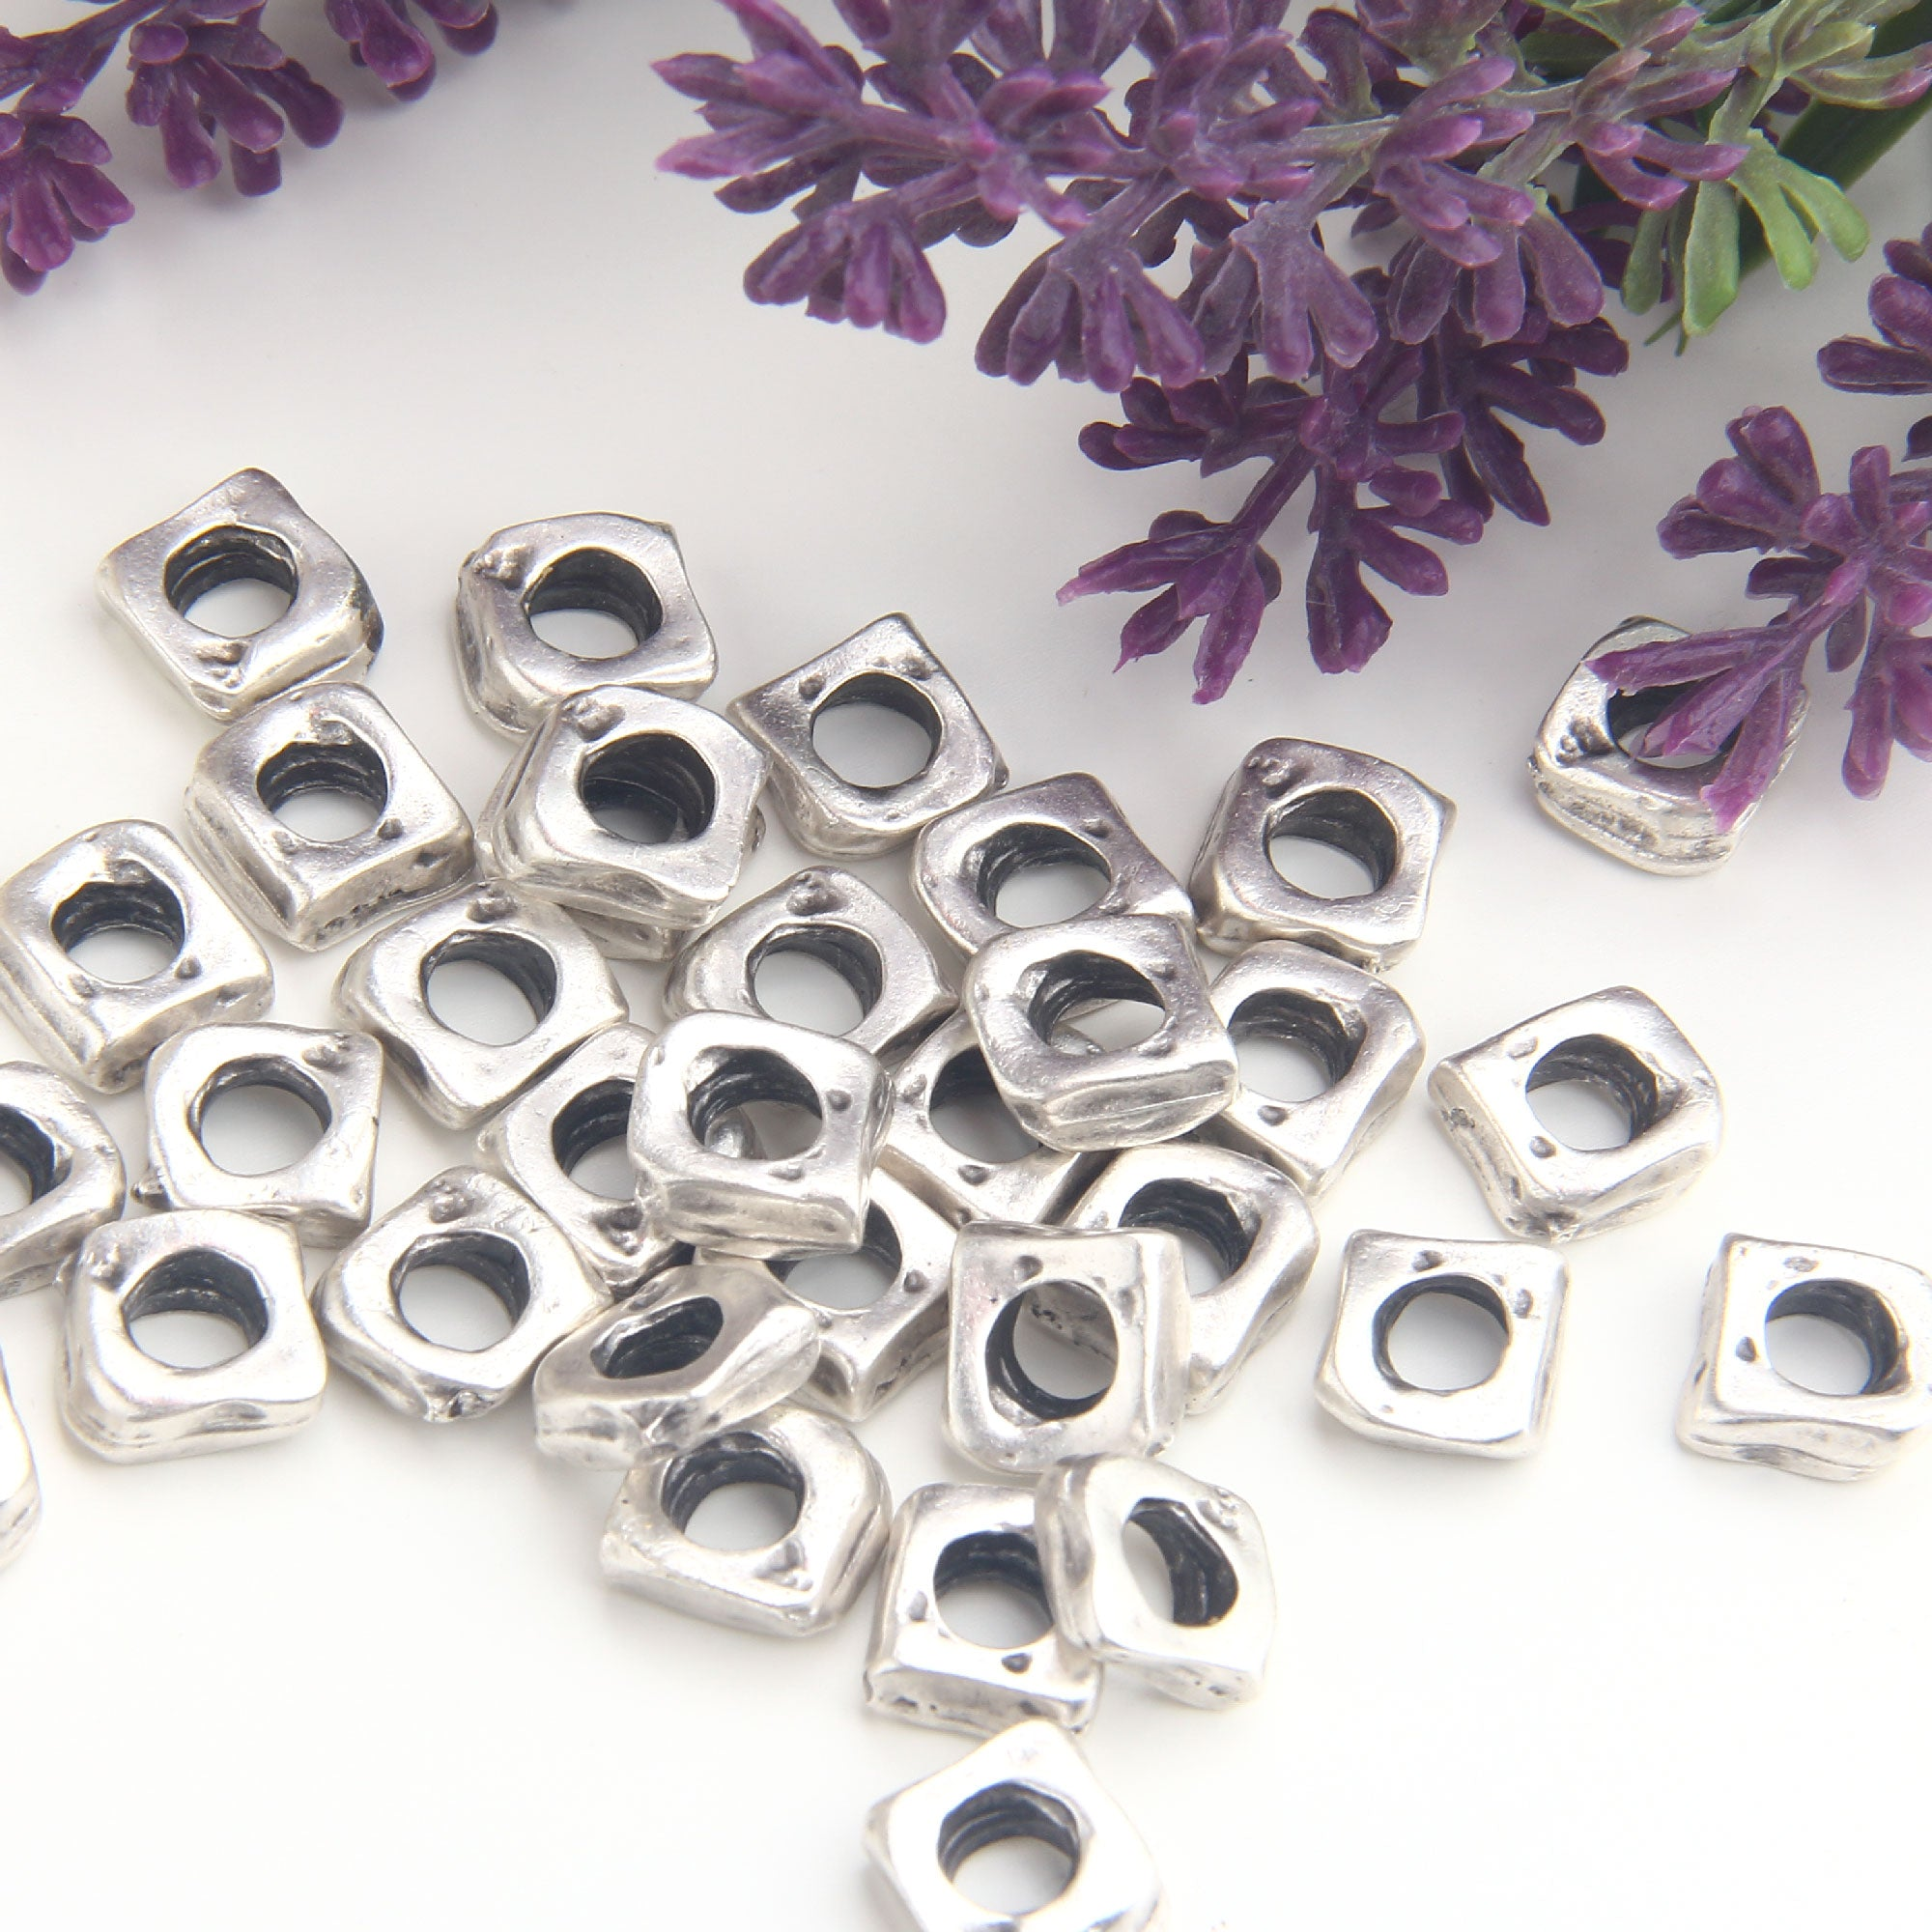 Silver Square Beads, Square Disc Beads, Square Slider Beads, Square Bead Spacers, 8 pieces // SB-161